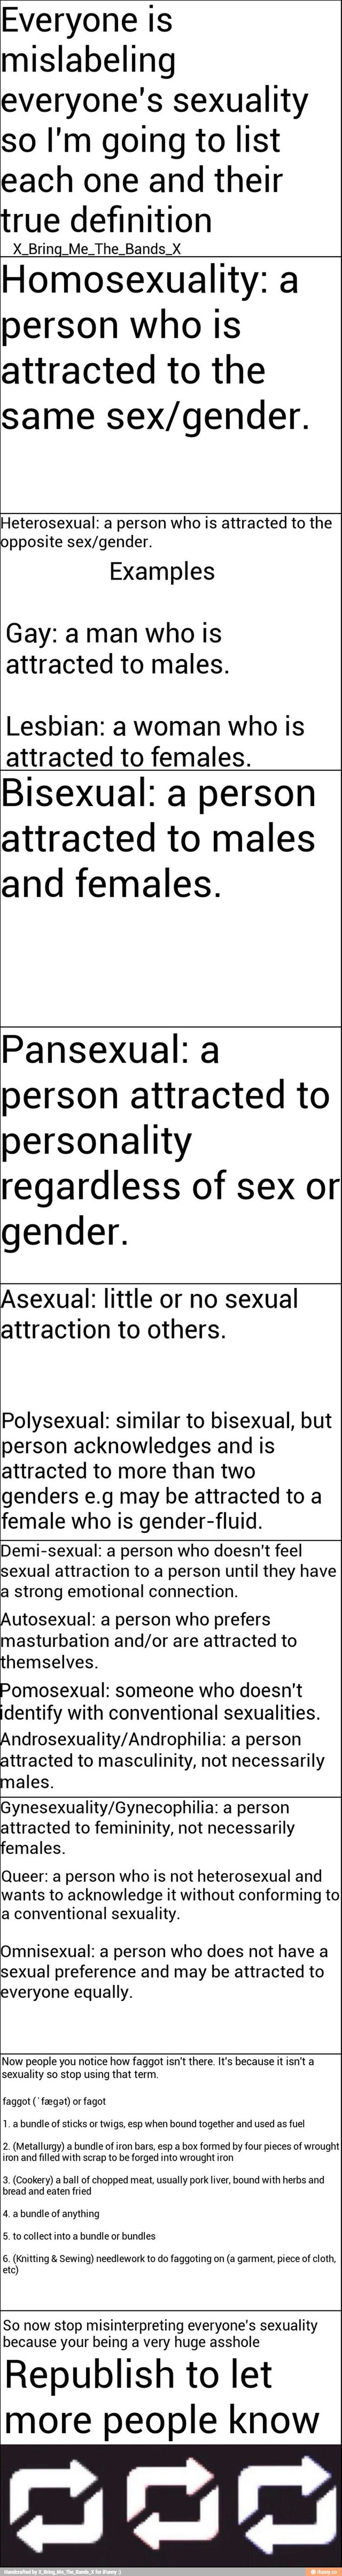 "Honesty tho ppl always say mean things about being ""gay"" like its an insult , lets change that"